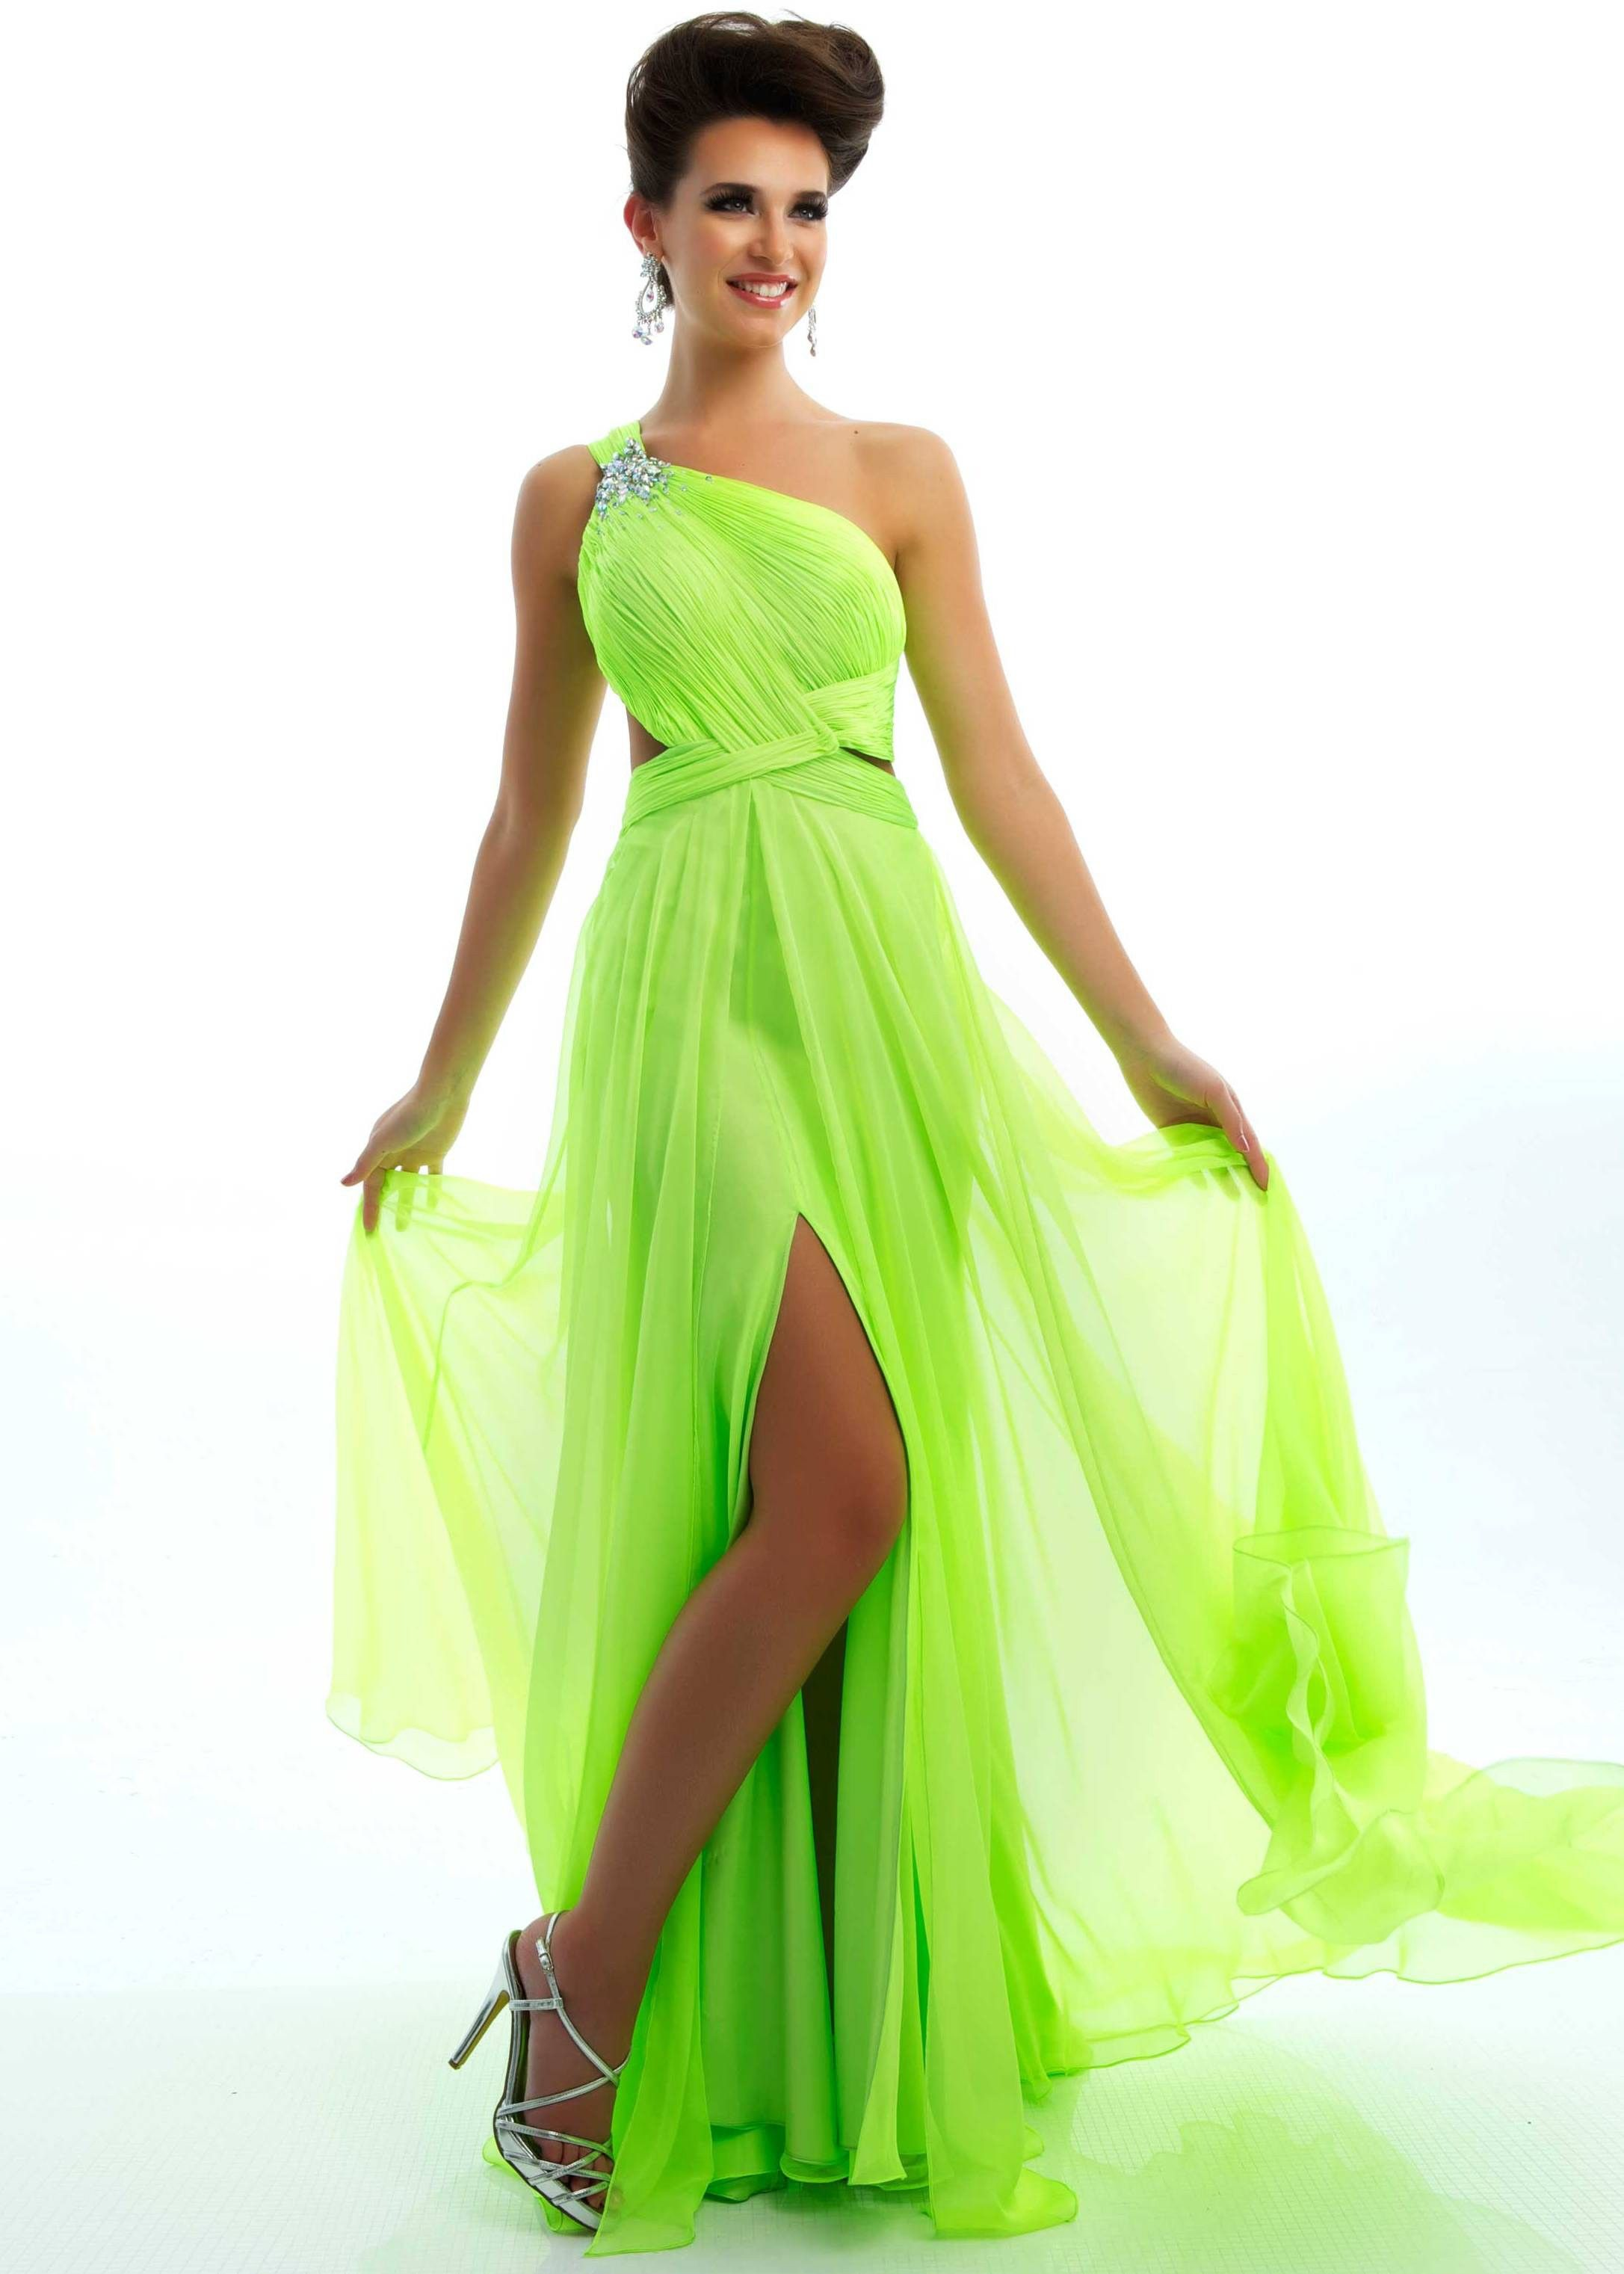 Its all about neon for prom 2013 flash by mac duggal 6294l mac duggal prom 2013 one shoulder neon lime gown unique vintage prom dresses retro dresses retro swimsuits ombrellifo Choice Image